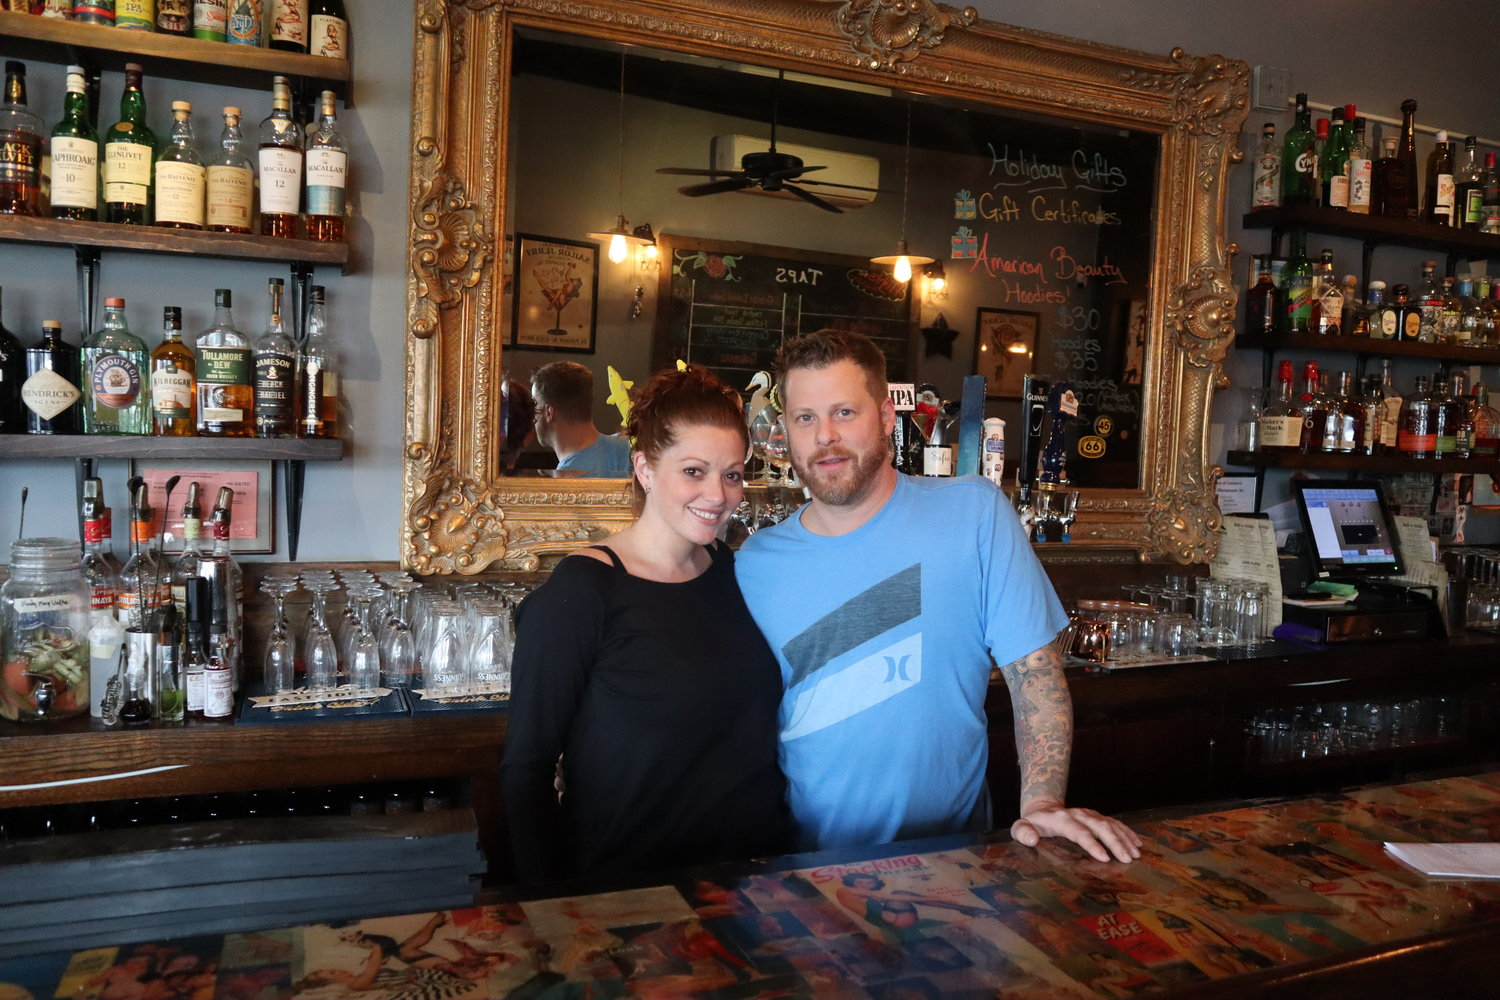 Maria Pallotta and Michael Cassano in American Beauty Bistro, which they own. The couple are the new owners of the original Effin Gruven location, and hope to revive the Bellmore cornerstone.